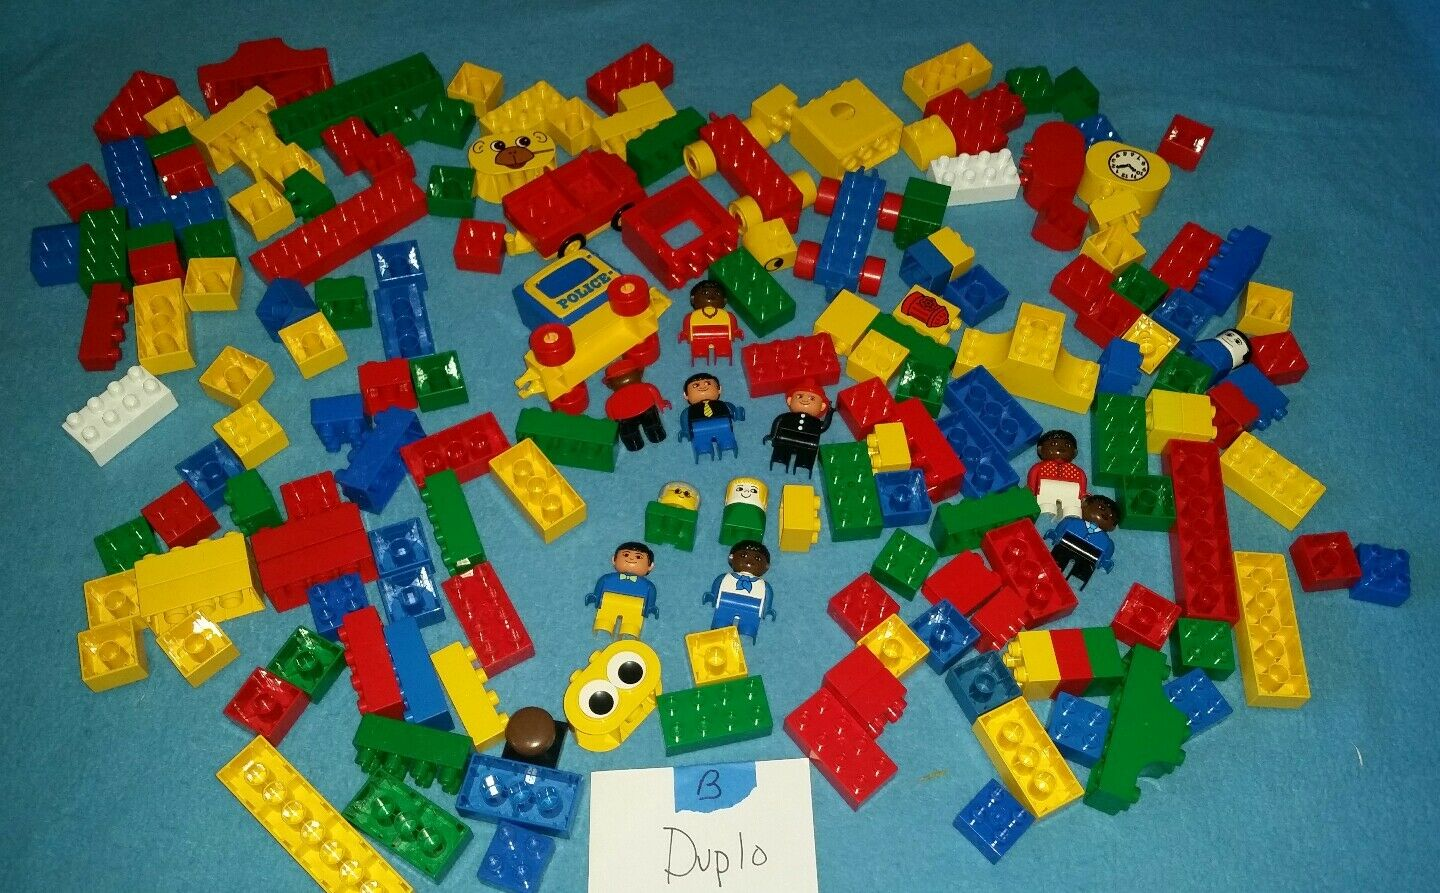 Lego Duplo Lot Lot Lot 184 pieces. Approximately 4lbs 5oz. 8a9dd3